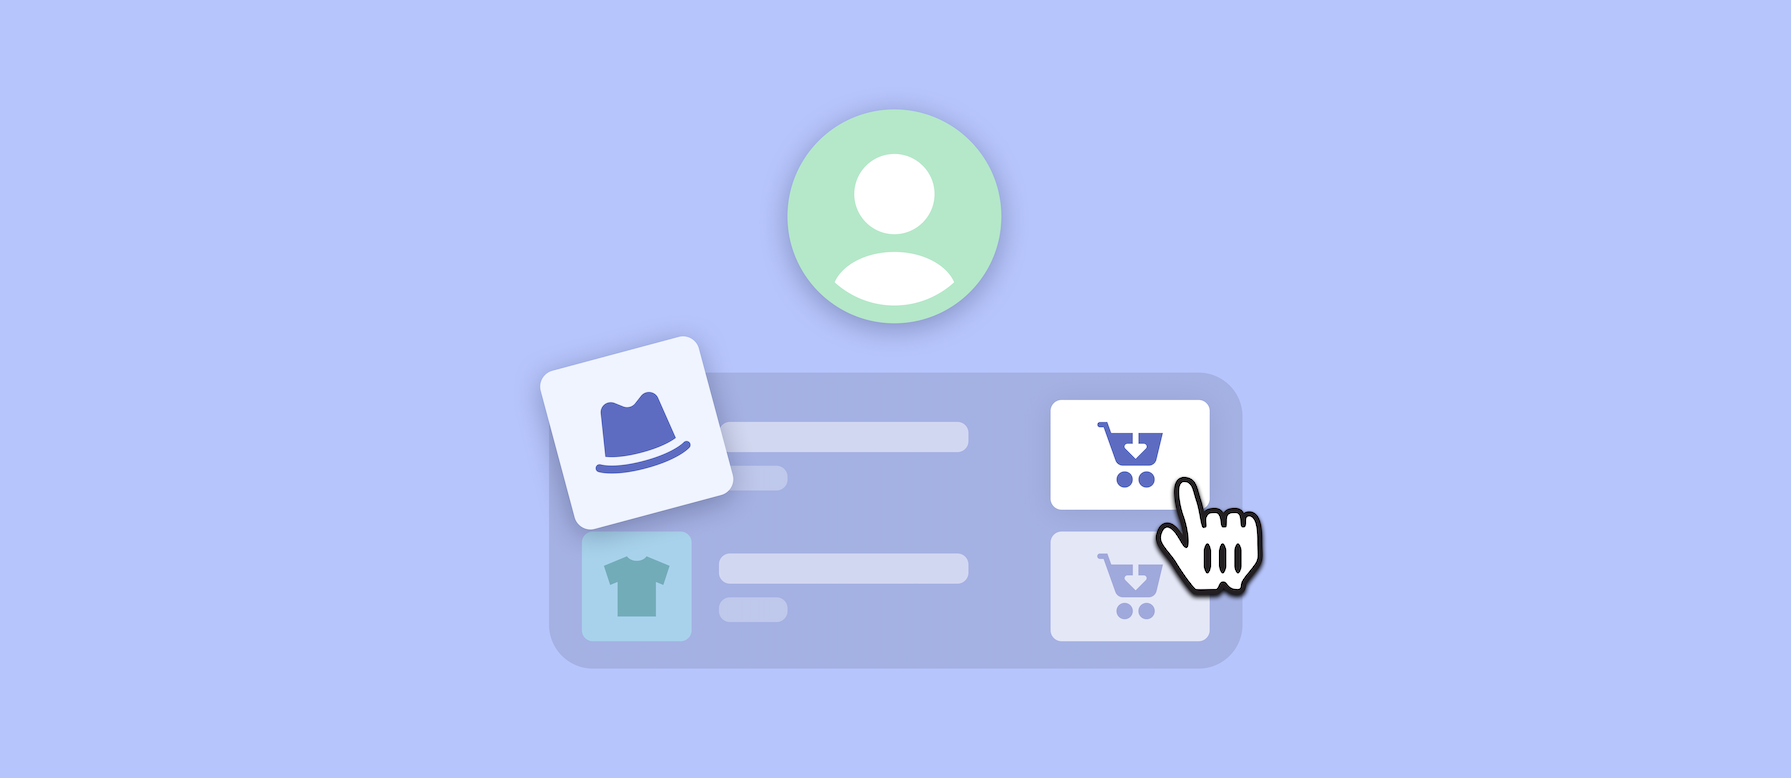 Using Gifting to Drive Ecommerce Sales on Shopify